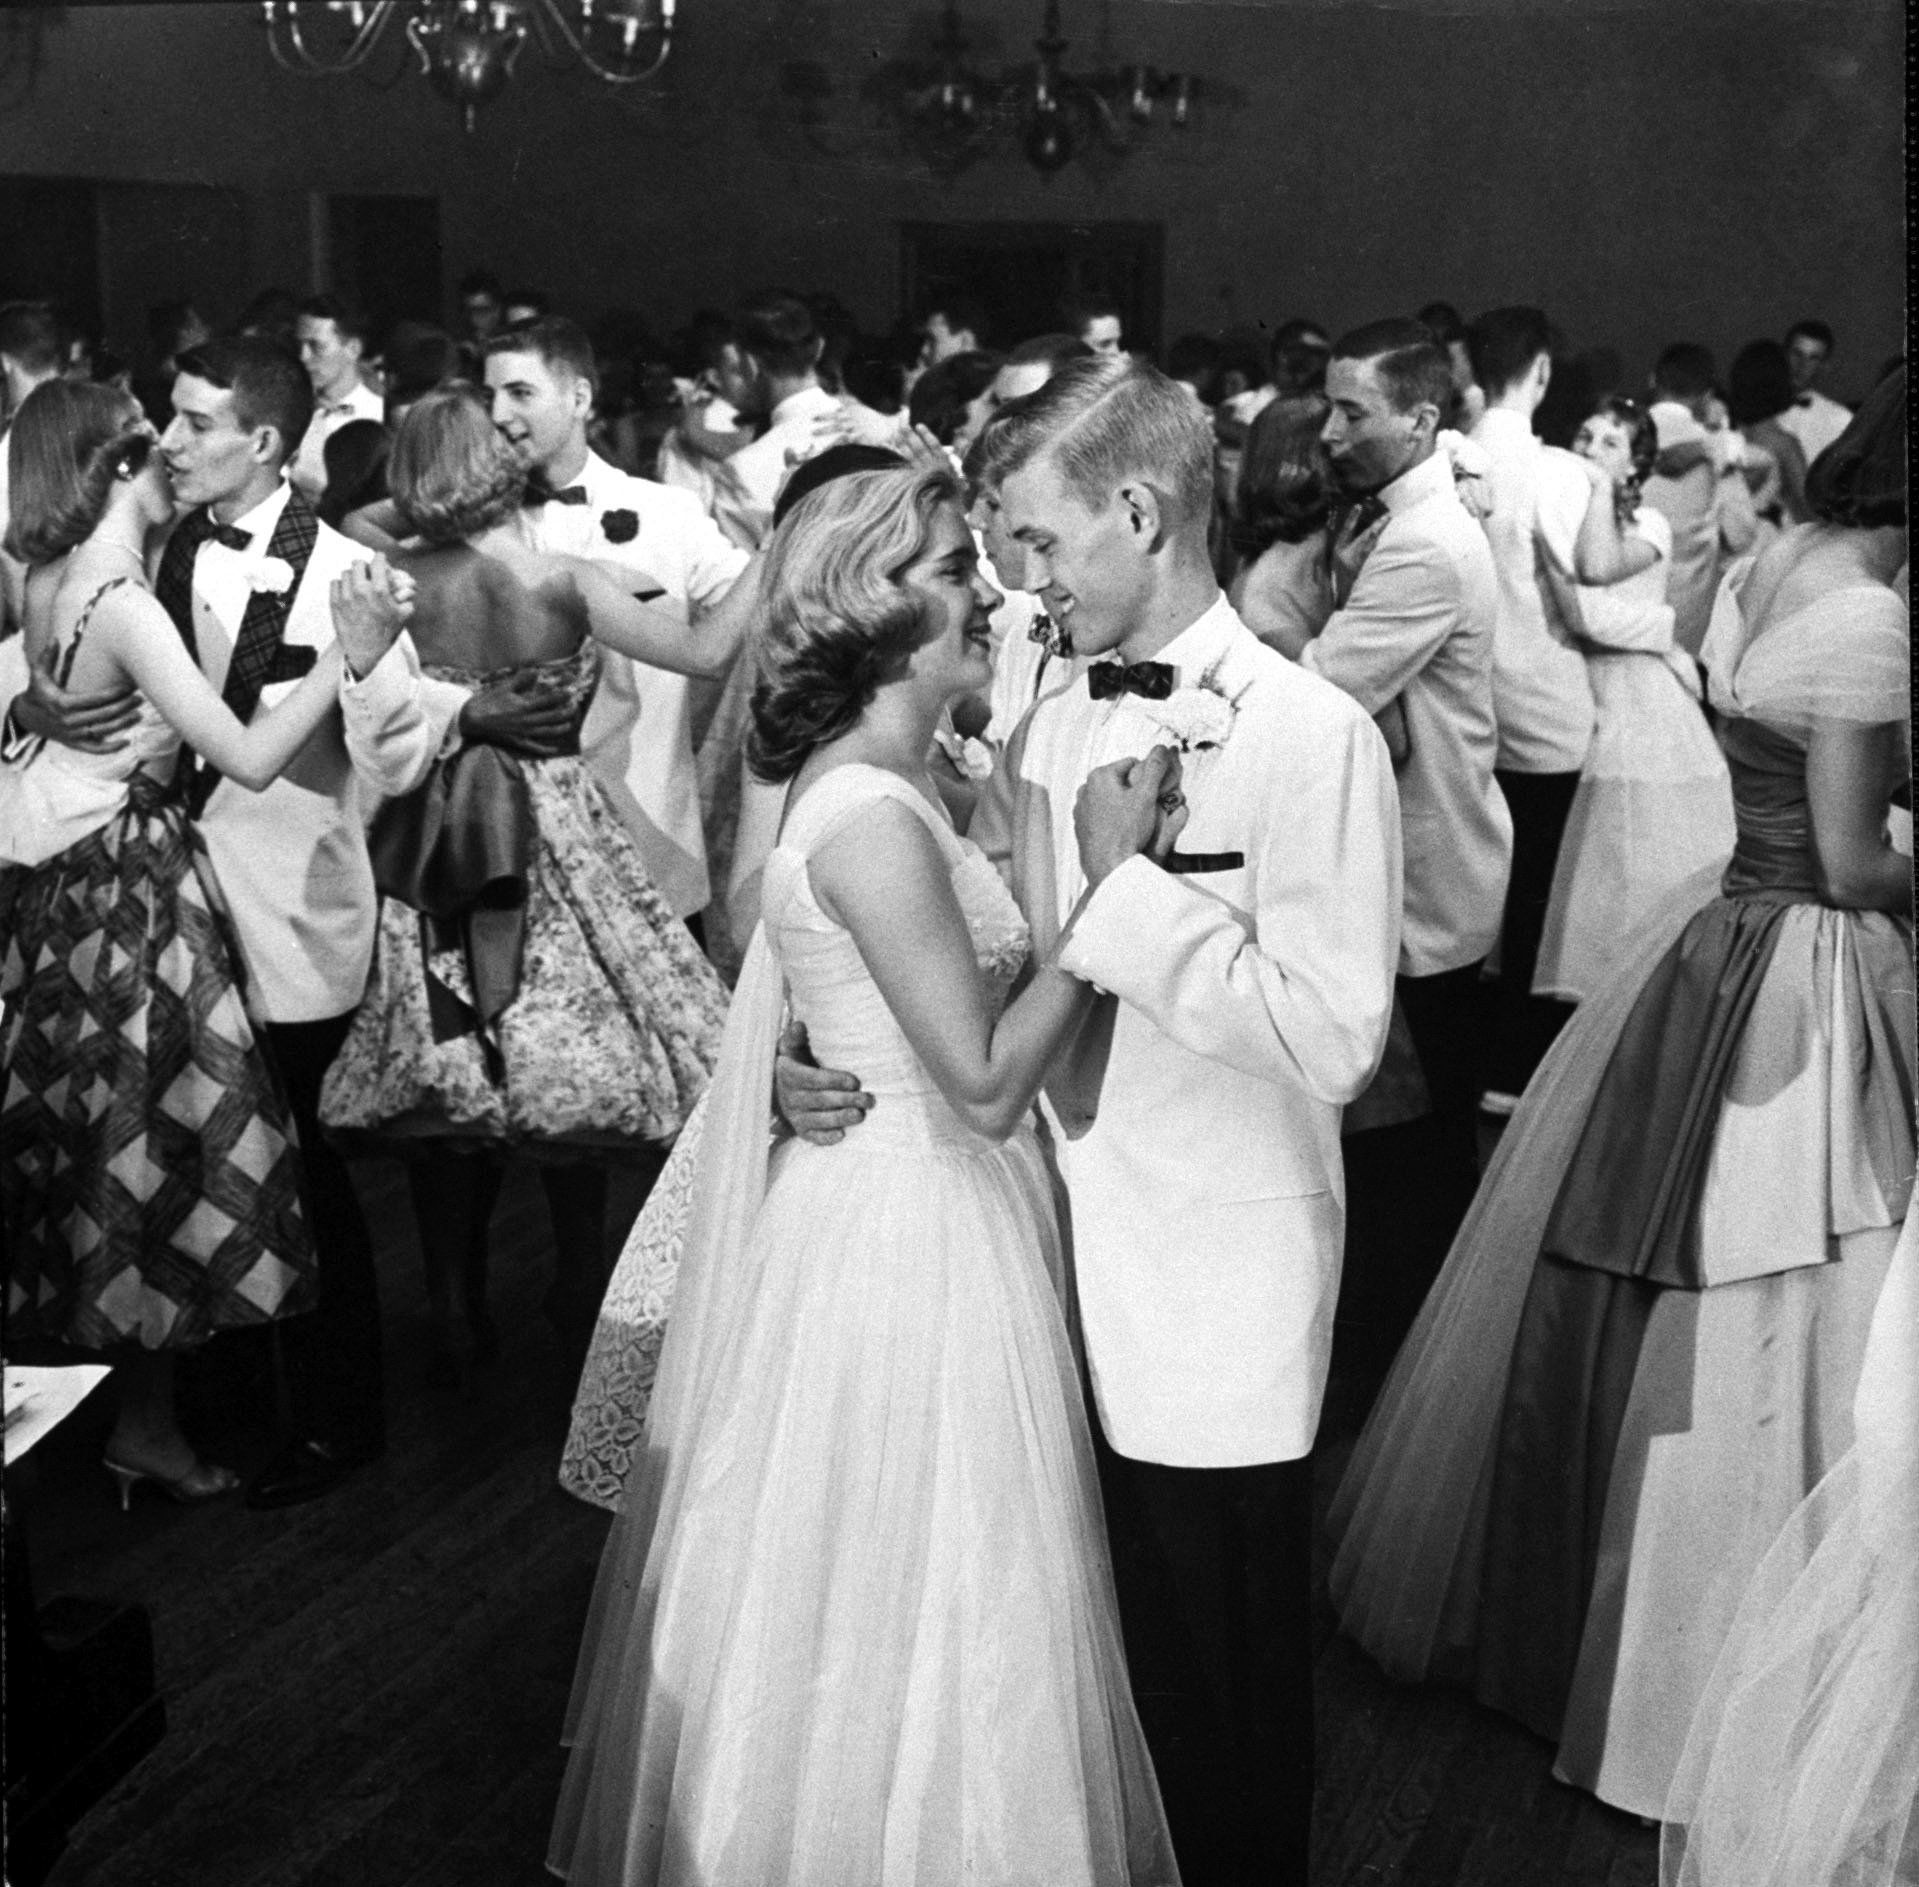 Students dancing at the Mariemont High School prom.  (Photo by Francis Miller//Time Life Pictures/Getty Images)